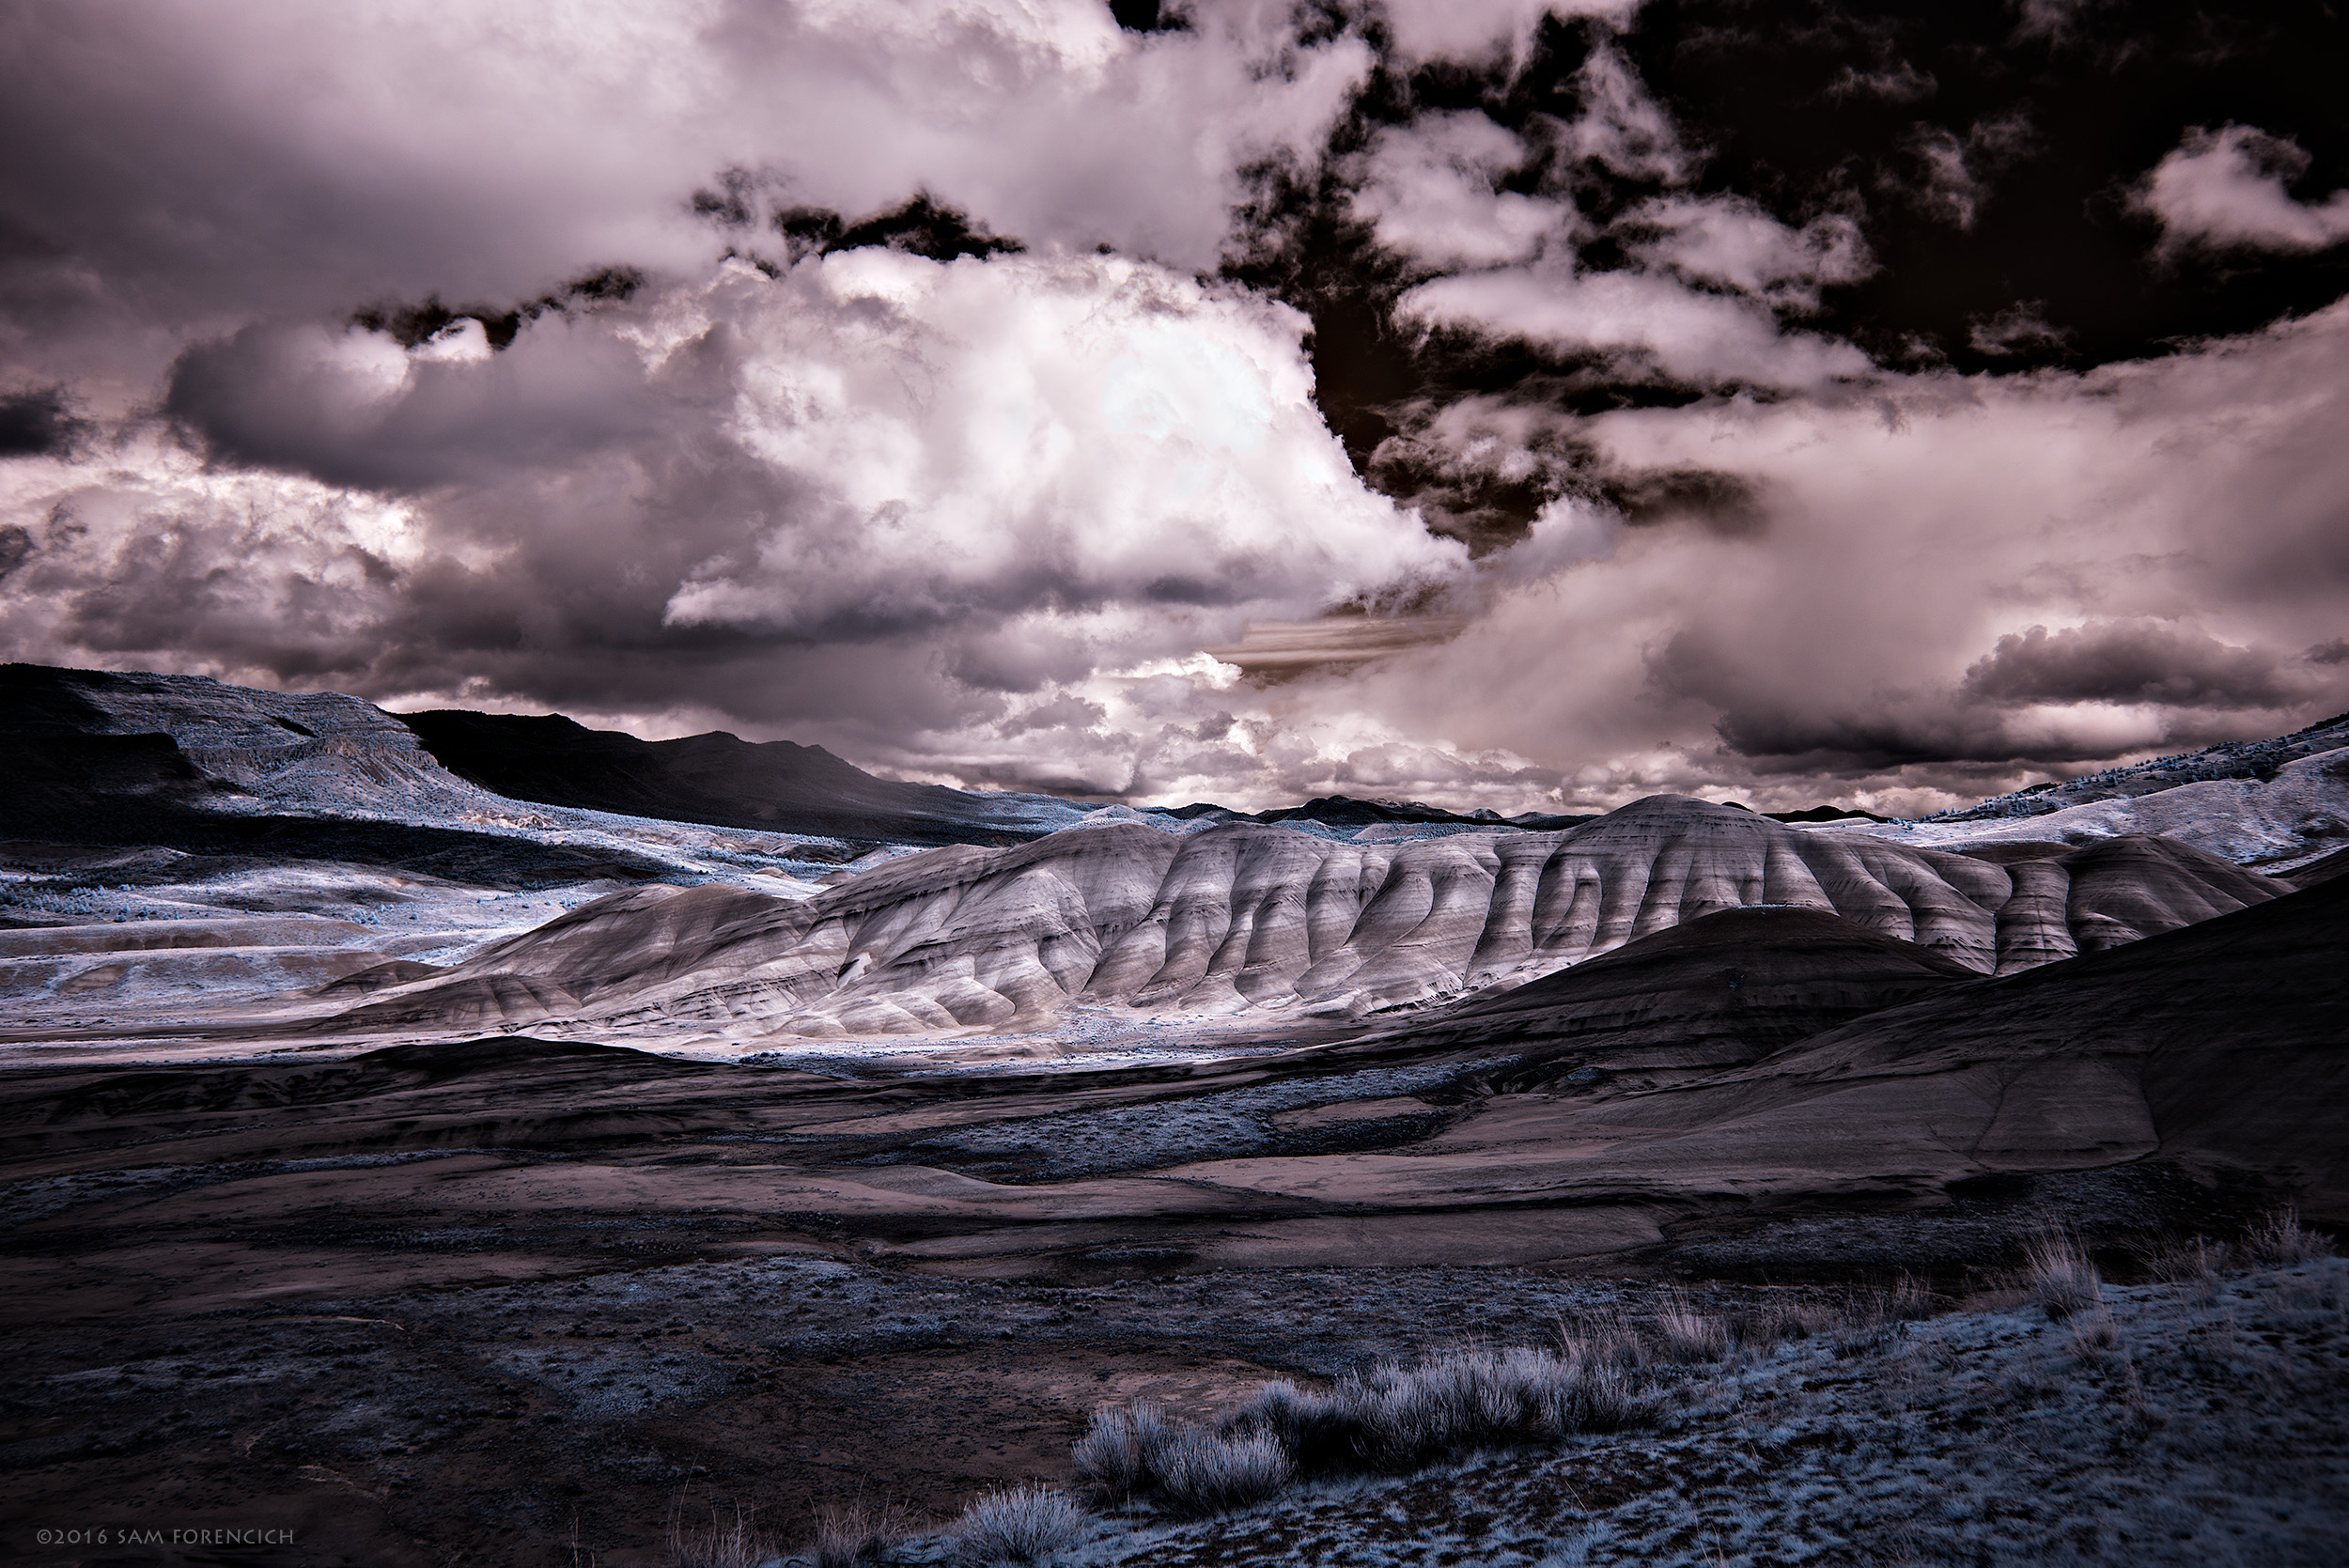 Storm clouds pass over the Painted Hills area of the John Day Fossil Bed National Monument in Central Oregon. Still image from Invisible Oregon time-lapse sequence. IR converted Nikon D750. © 2016 Sam Forencich